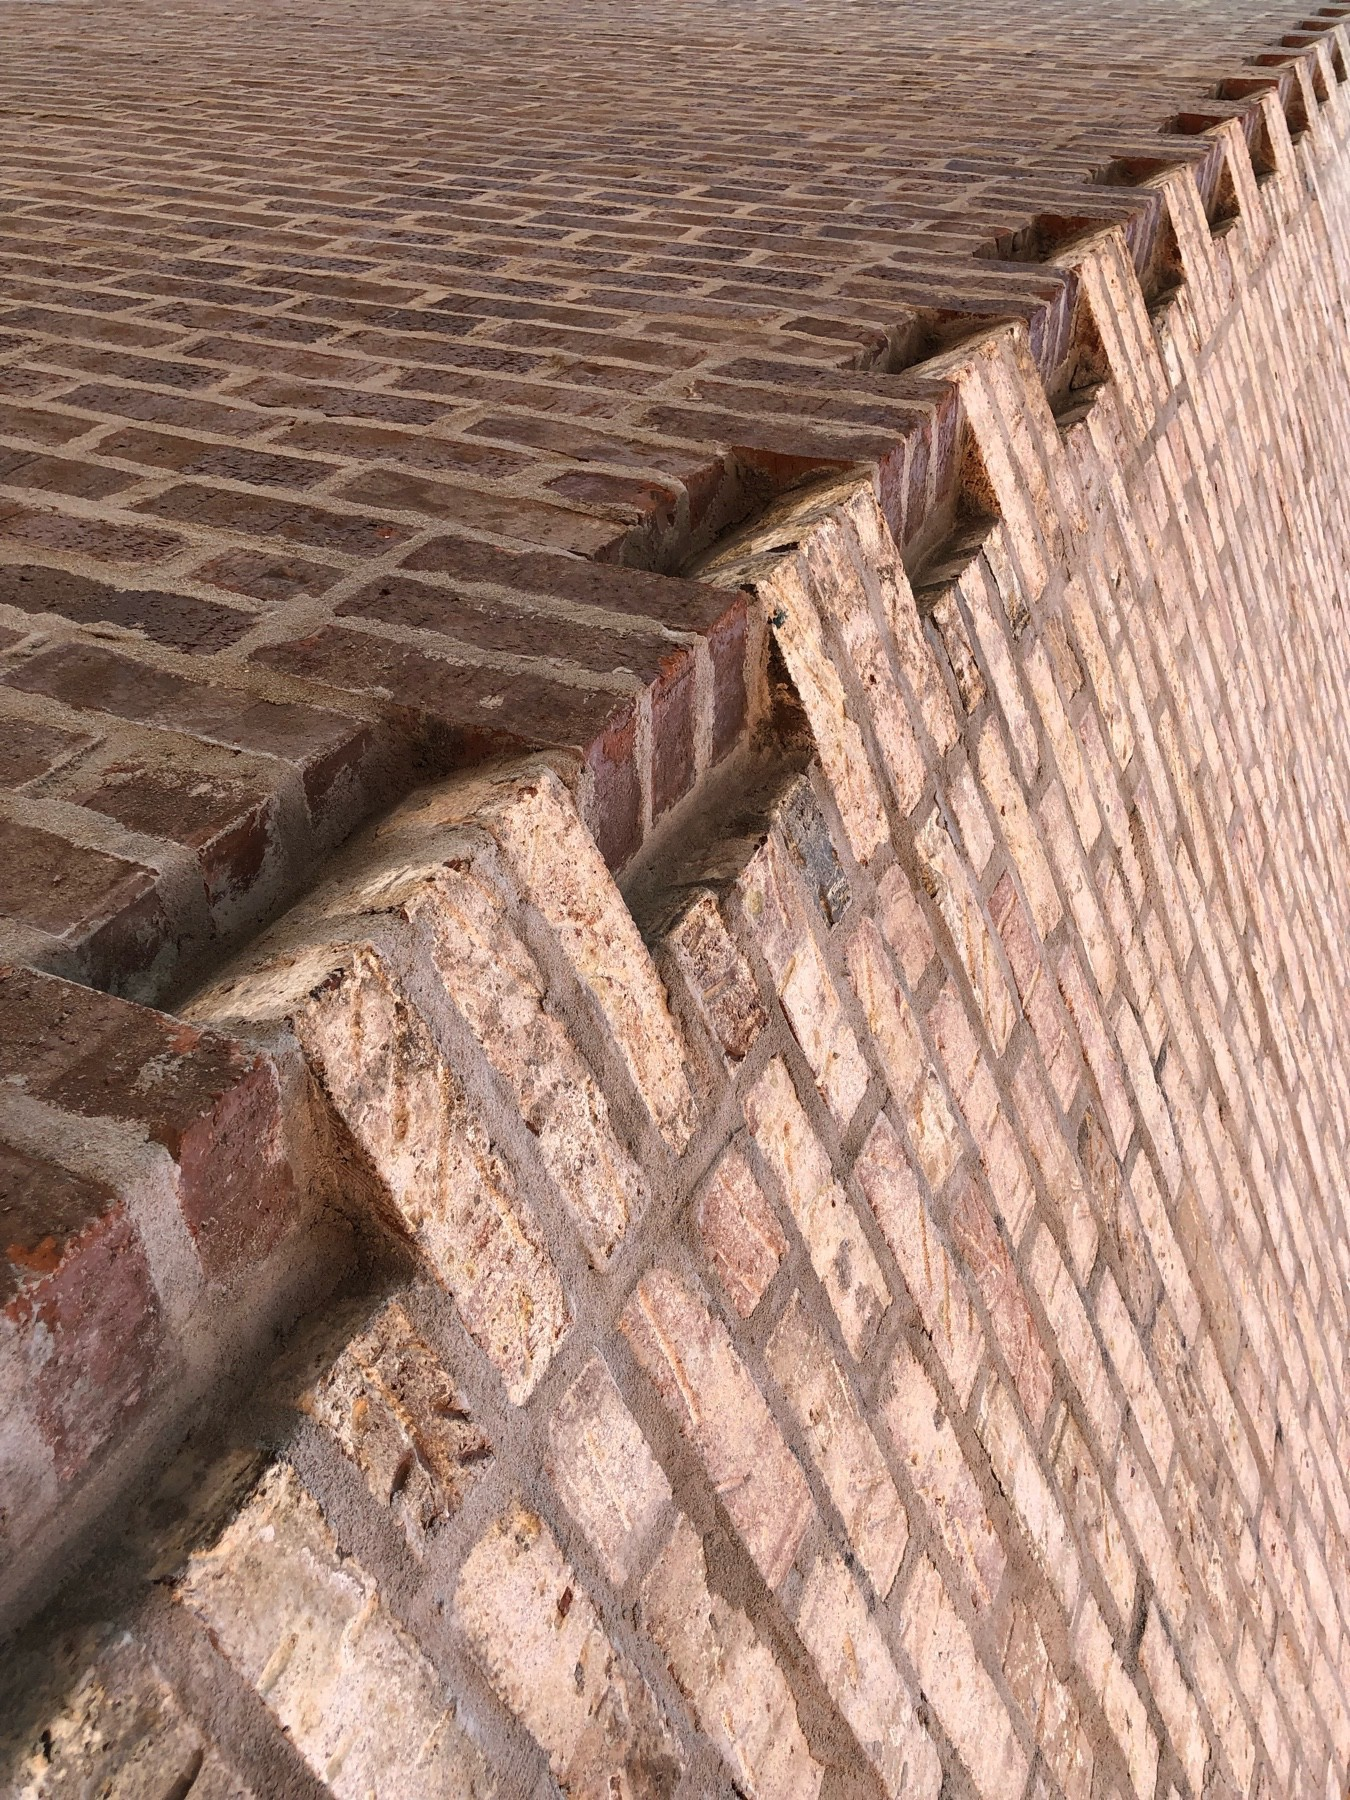 Two brick walls joined together in a teeth-like manner.  The joint is angled from bottom left to top right, and the wall on the right is a lighter shade of red than the left.